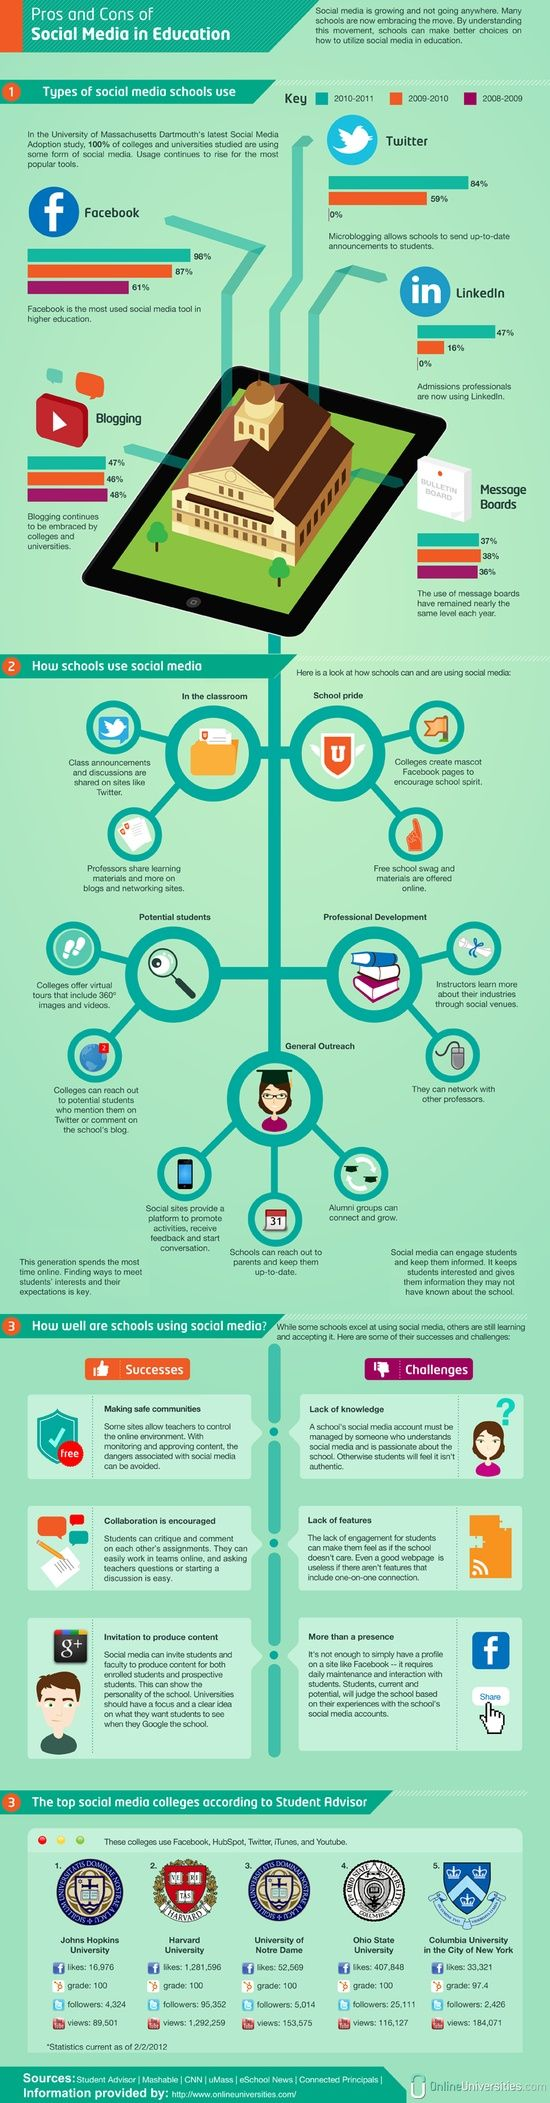 Using Infographics as assignments: research, critical thinking, technology, design, storytelling, copyright, collaboration